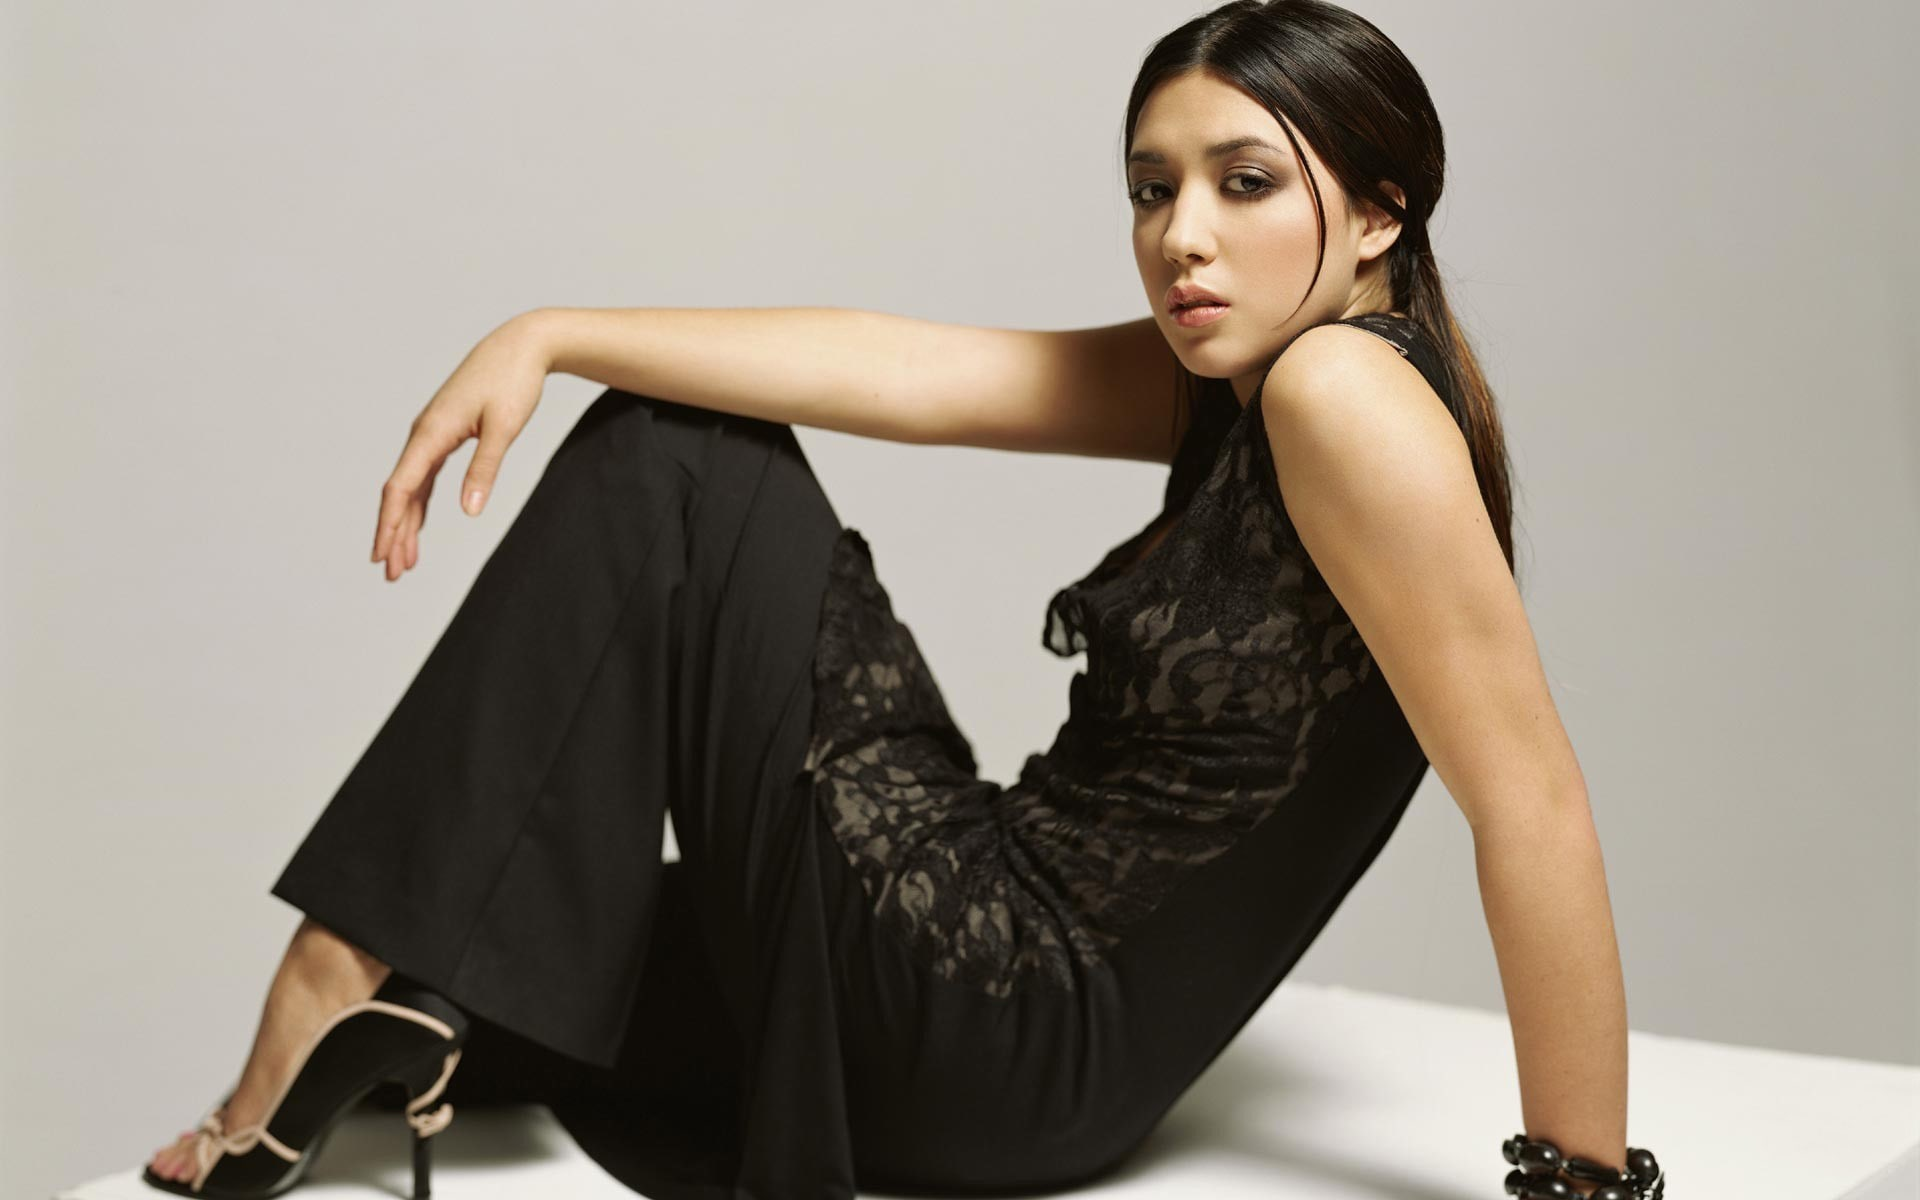 Michelle Branch HQ wallpapers